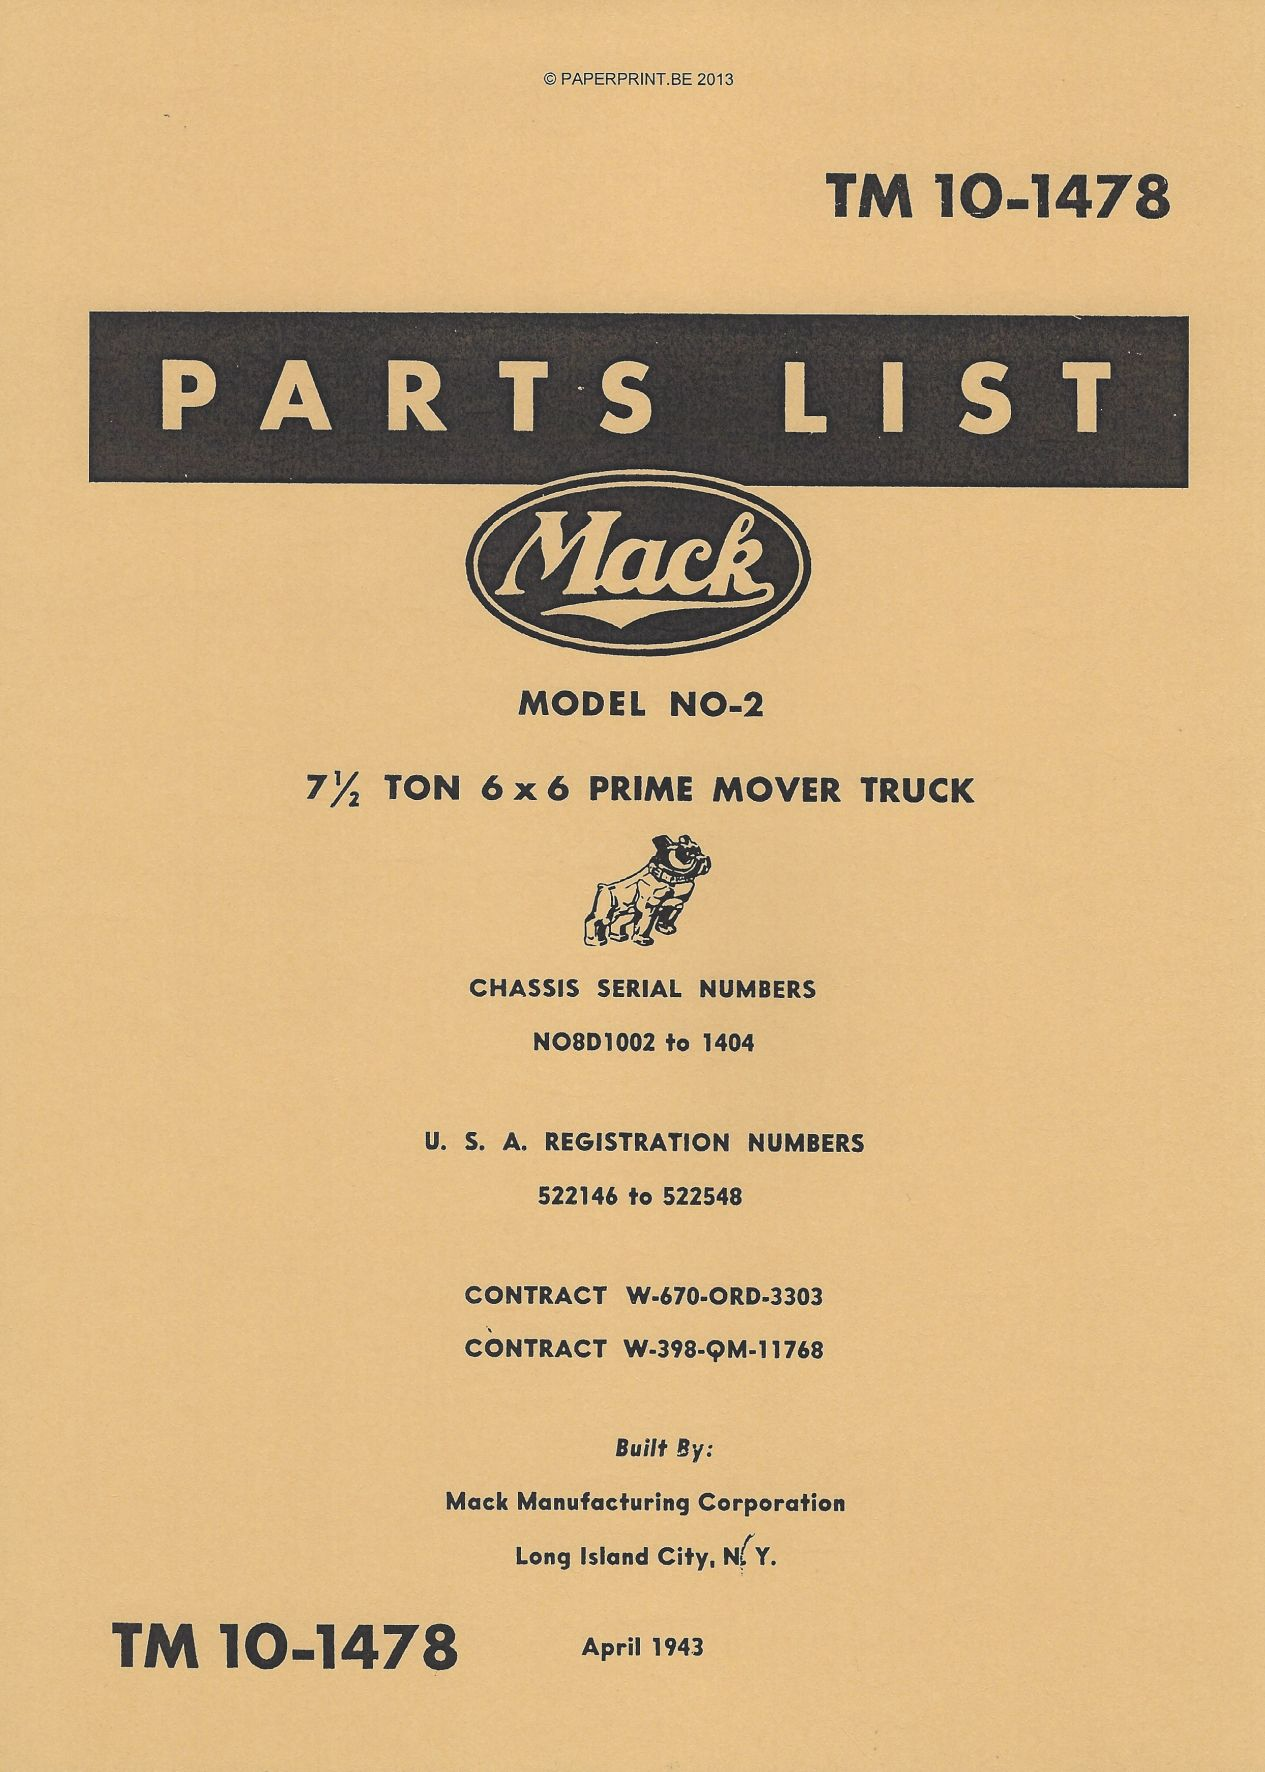 TM 10-1478 US PARTS LIST FOR 7 ½ - TON  6x6 PRIME MOVER TRUCK (MACK NO-2)